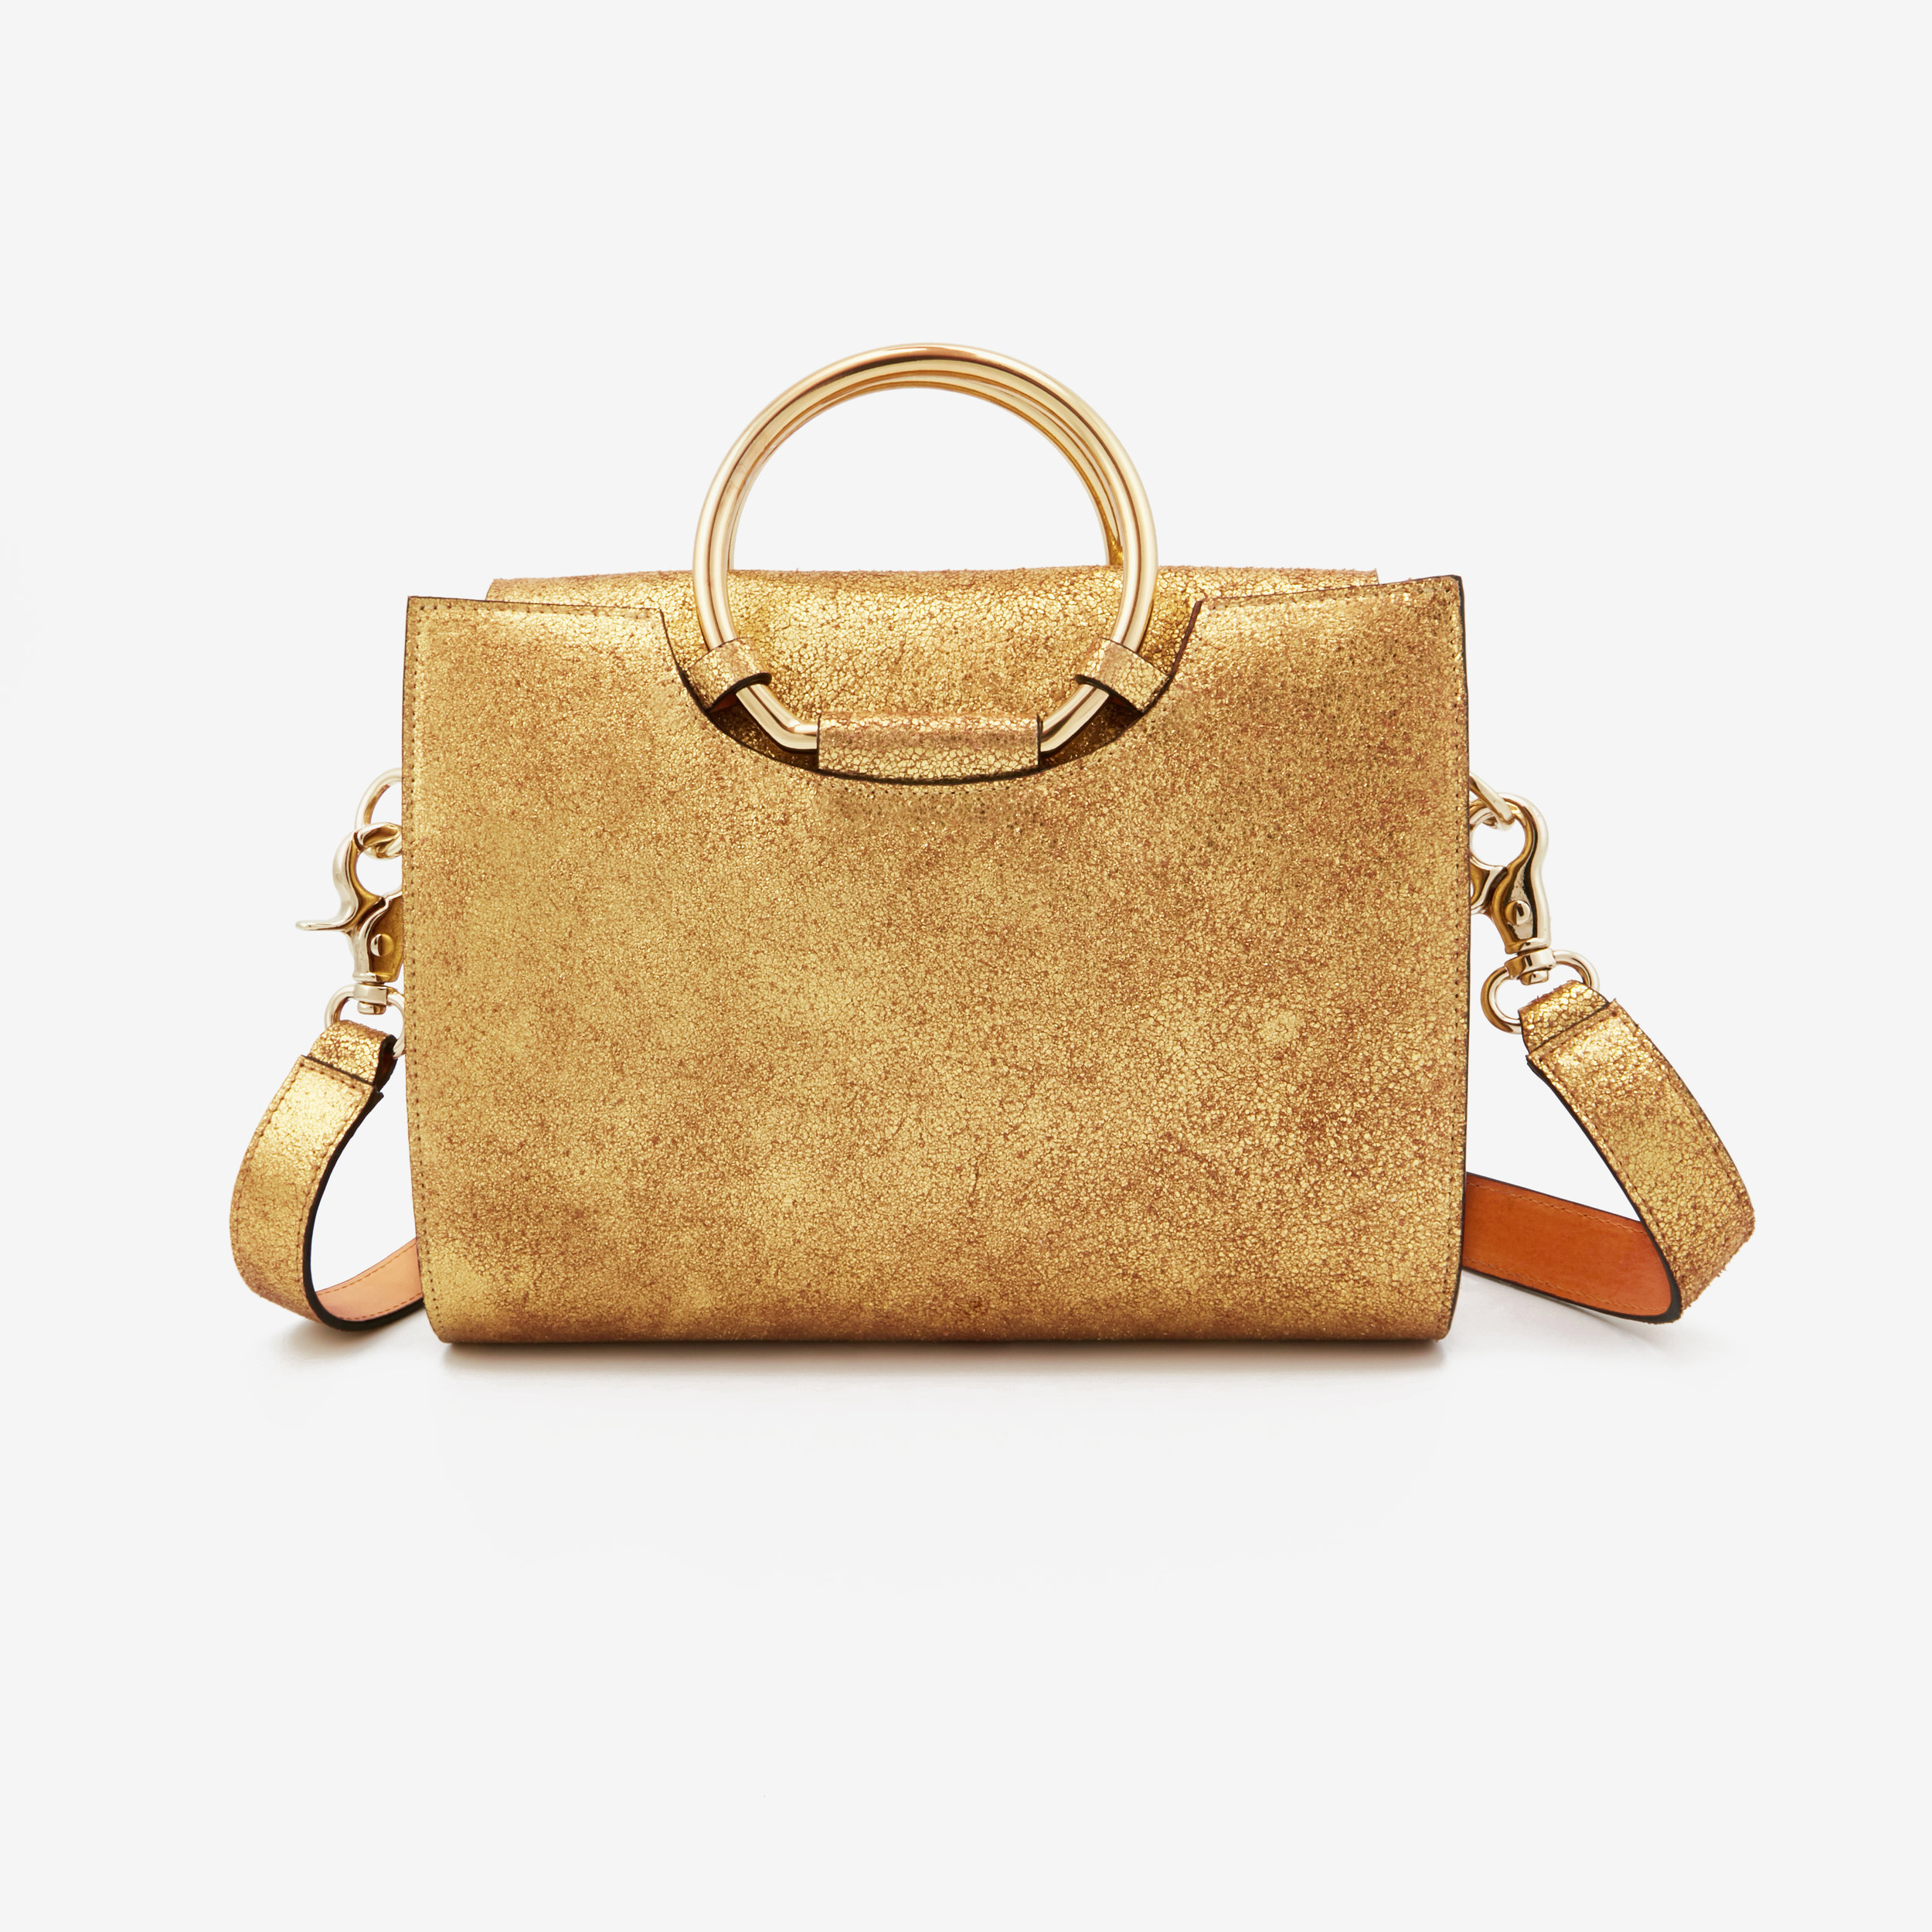 SCARLETT OLD GOLD - 450,00€